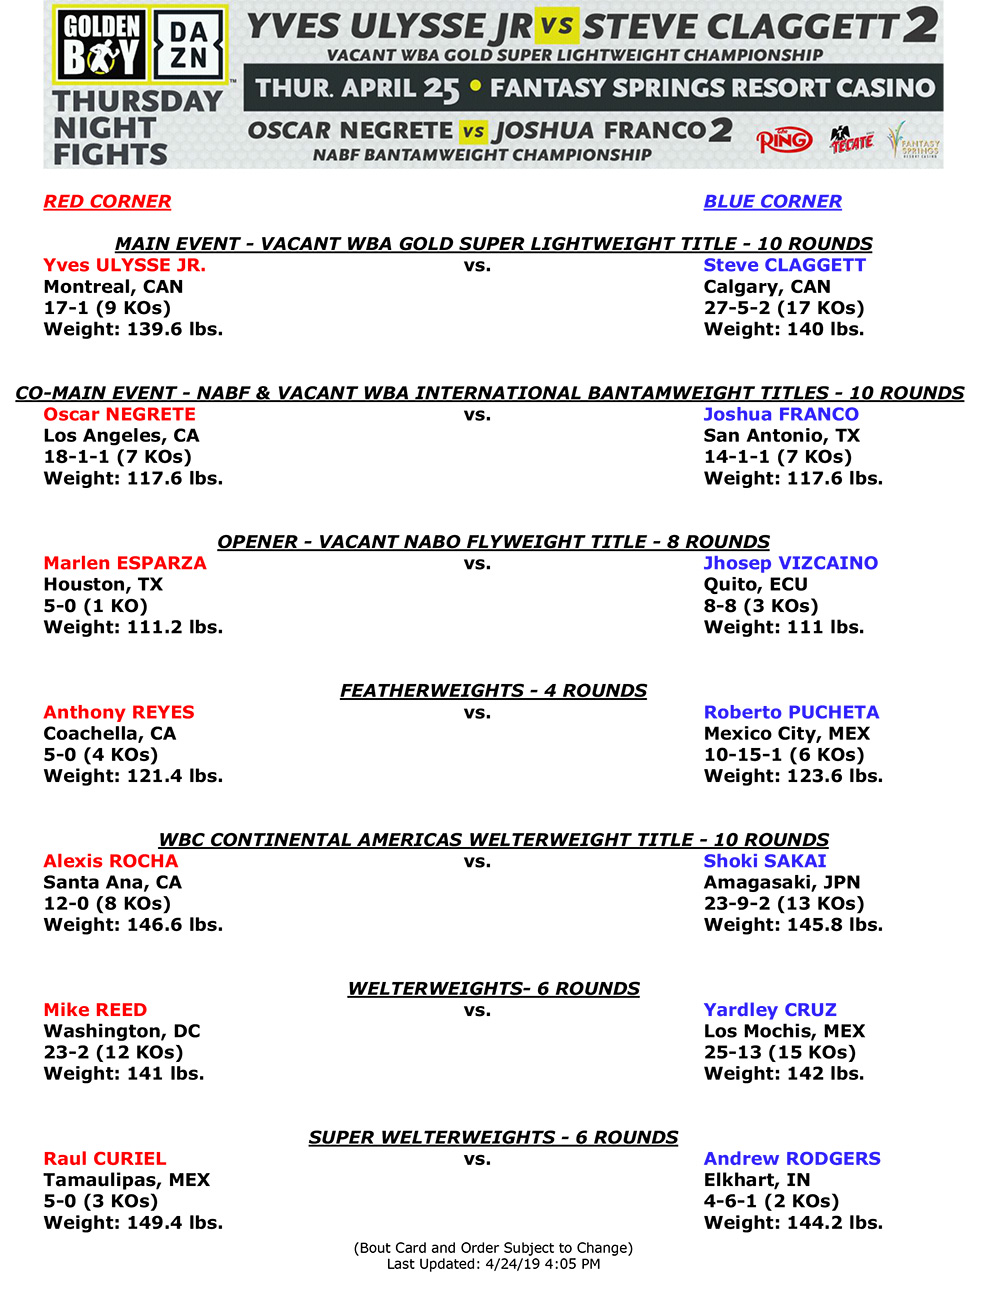 Ulysse Clagget2 Bout Sheet w Weights  - TNF bout sheet with weigh-in results: Ulysse-Claggett and Negrete-Franco rematches